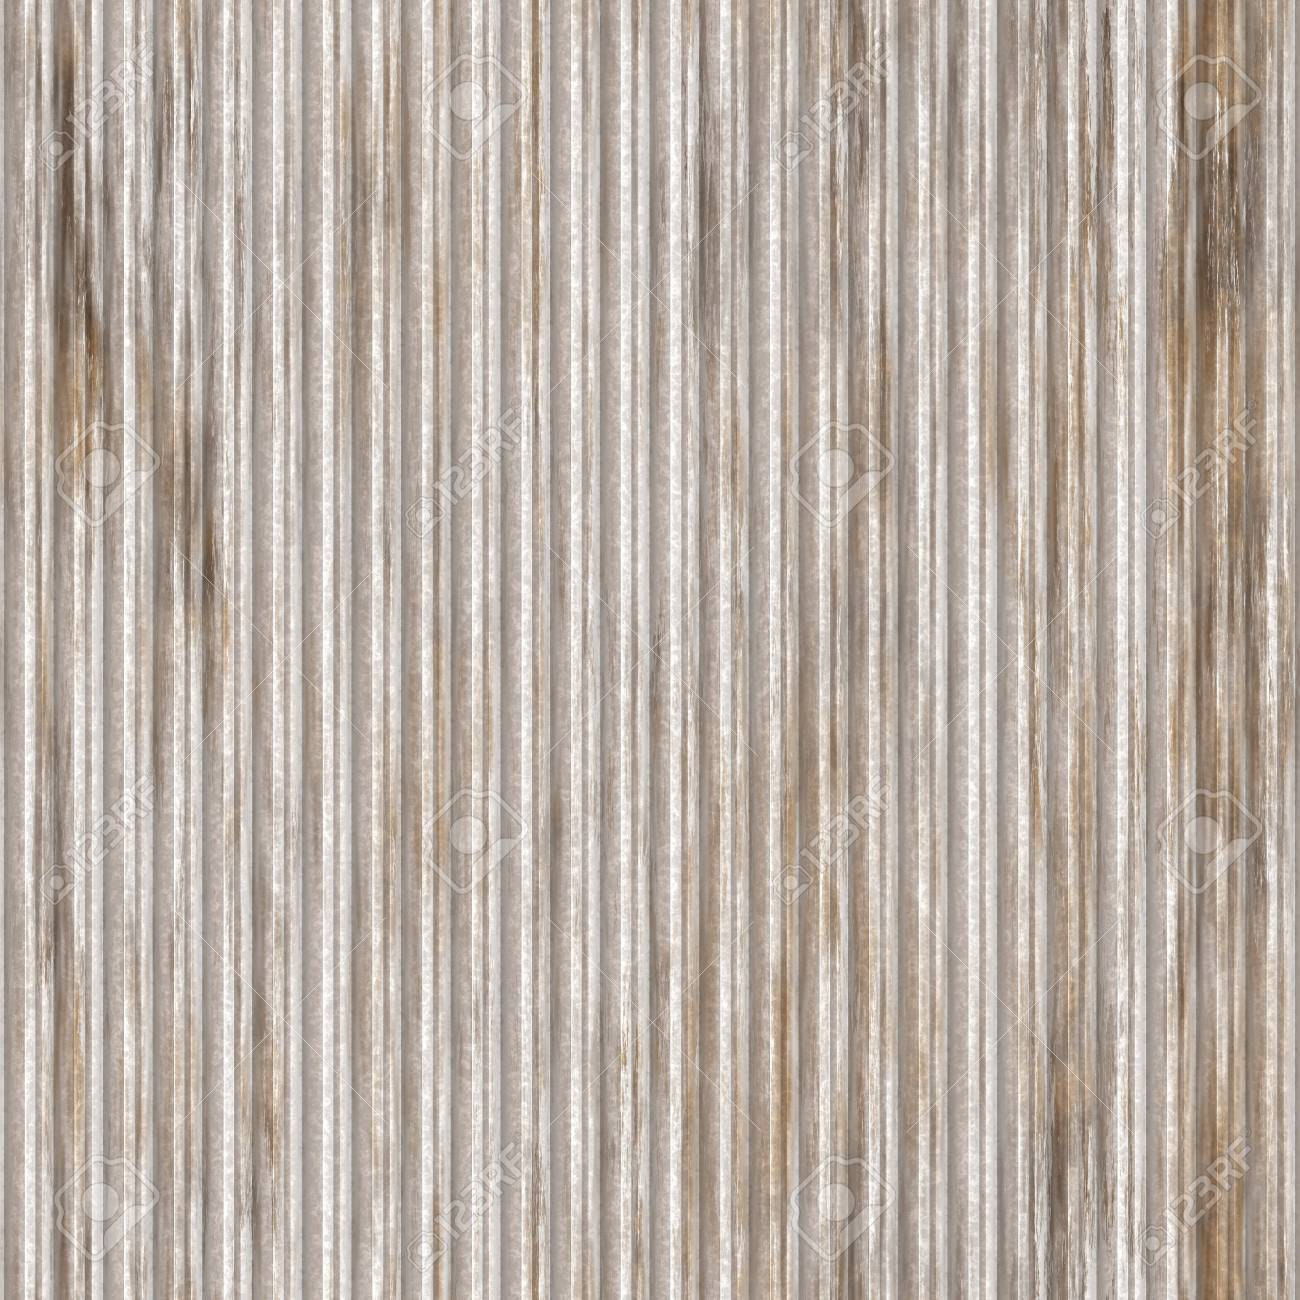 Corrugated metal ridged surface with corrosion seamless texture Stock Photo    6646606. Corrugated Metal Ridged Surface With Corrosion Seamless Texture